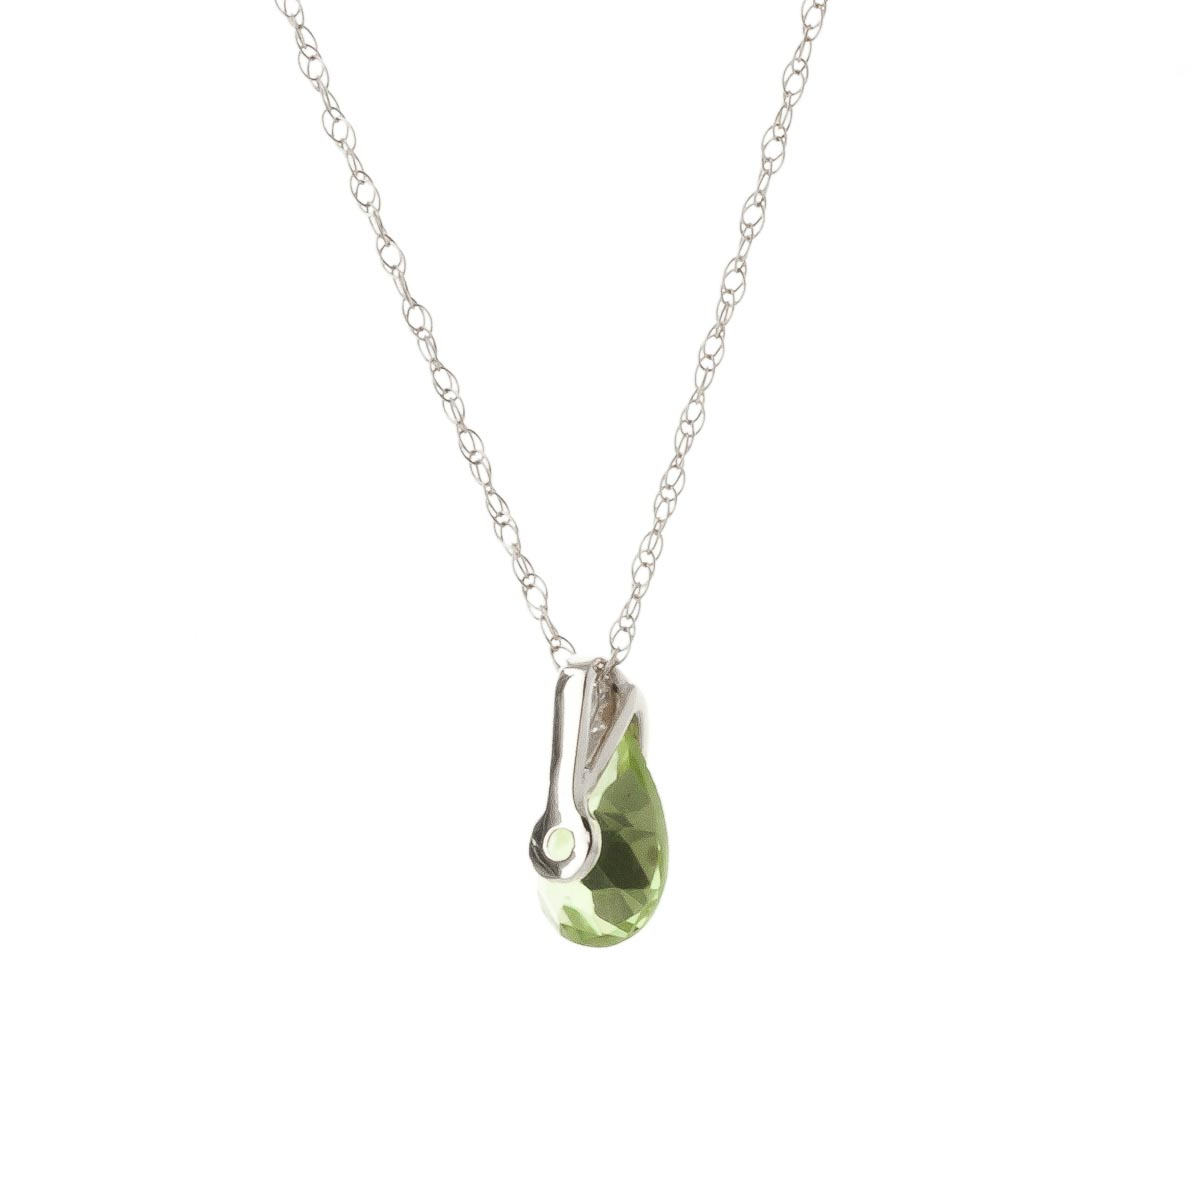 Pear Cut Peridot Pendant Necklace 0.68ct in 9ct White Gold